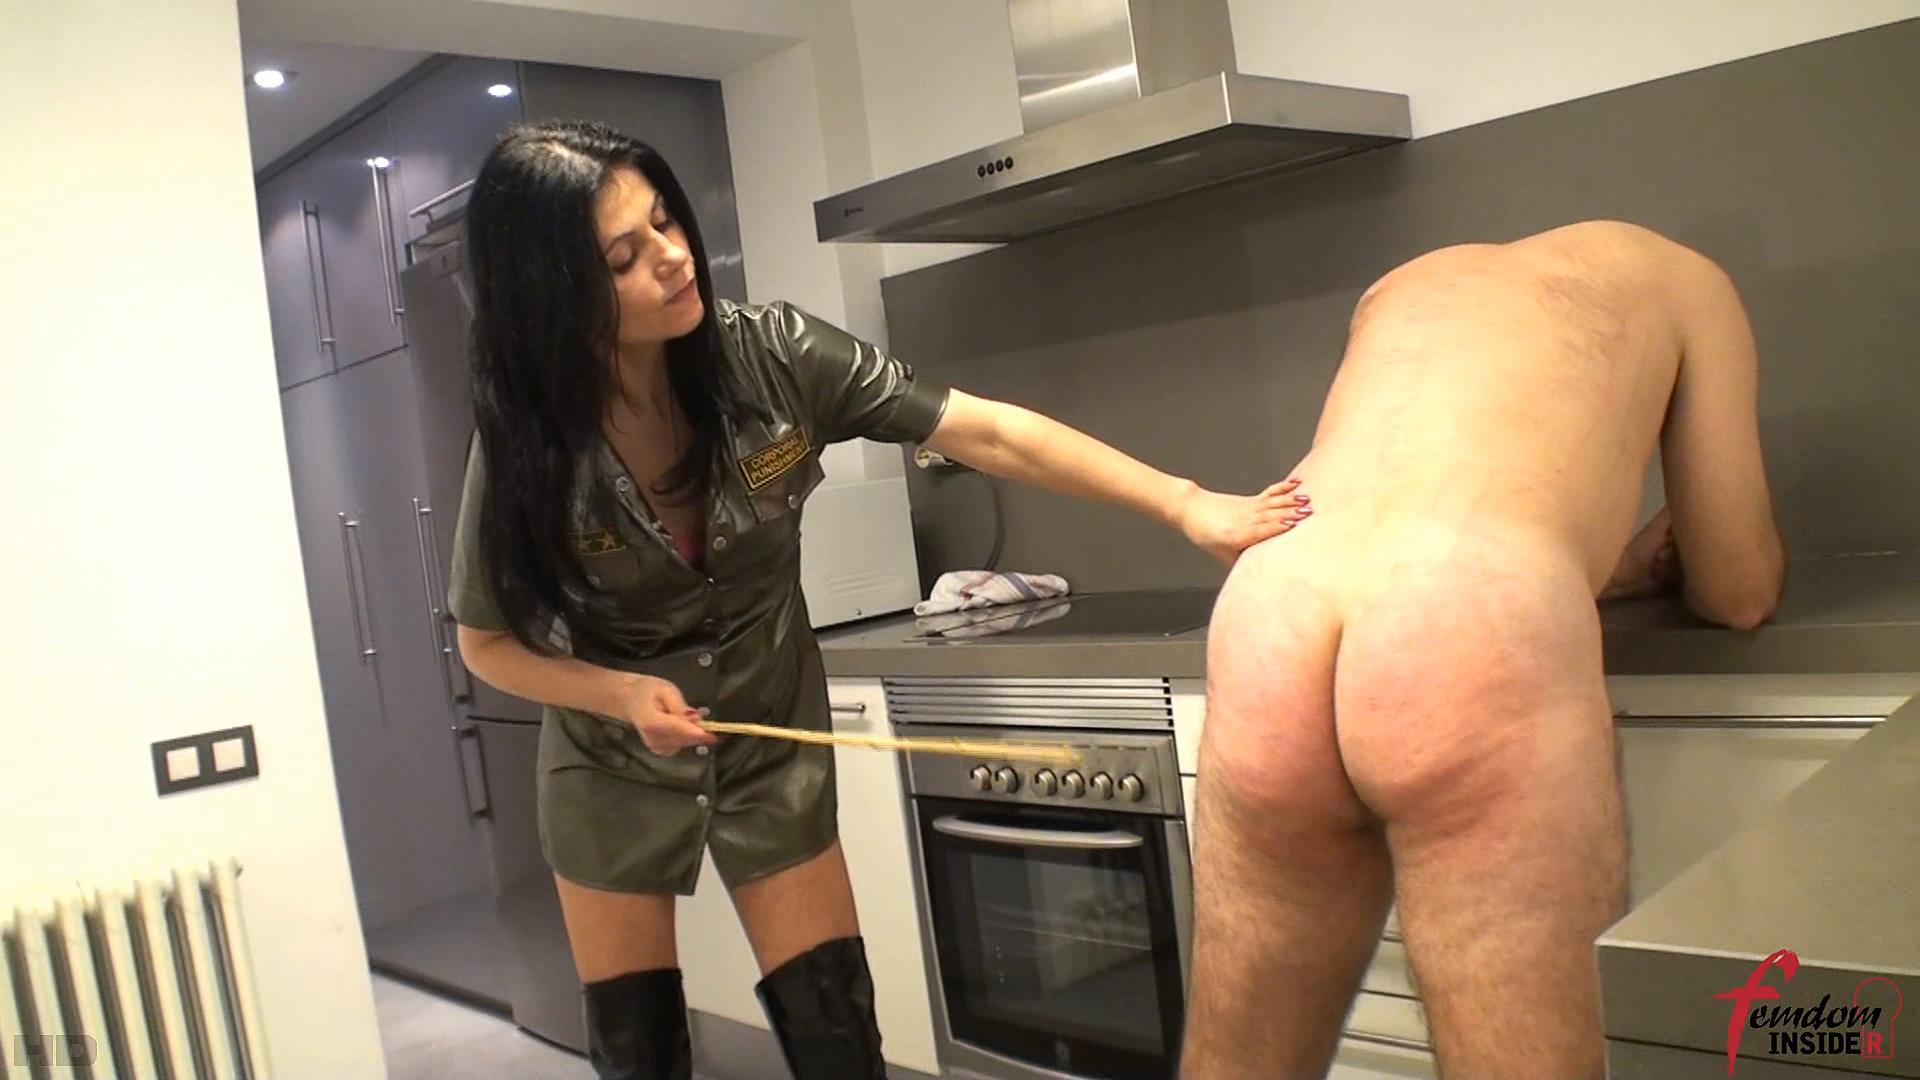 Mistress Soraya In Scene: Severe Military Caning - FEMDOMINSIDER - FULL HD/1080p/WMV